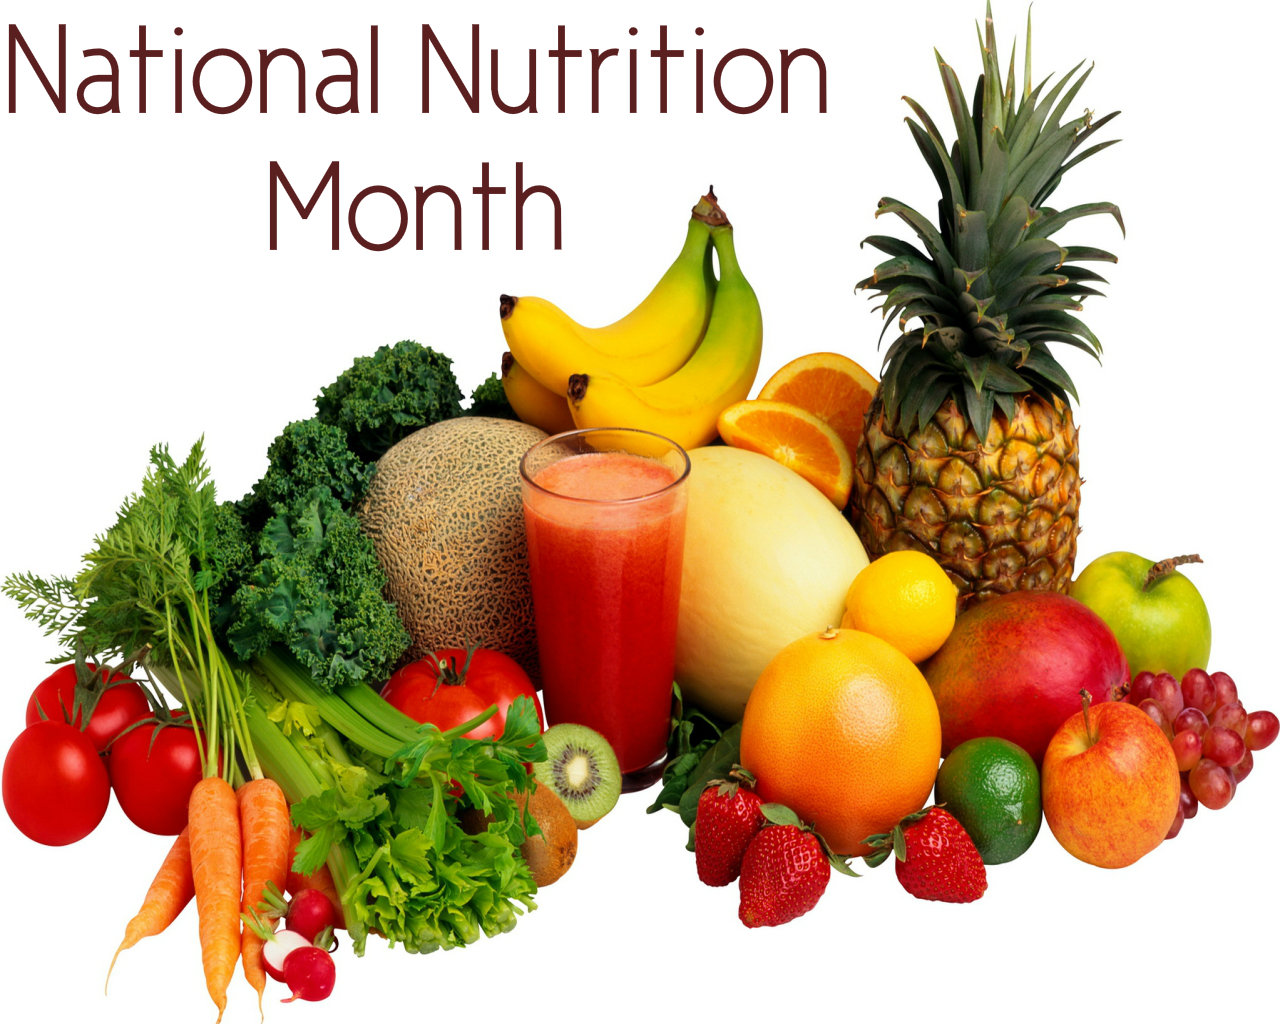 national-nutrition-month-being-celebrated-across-country